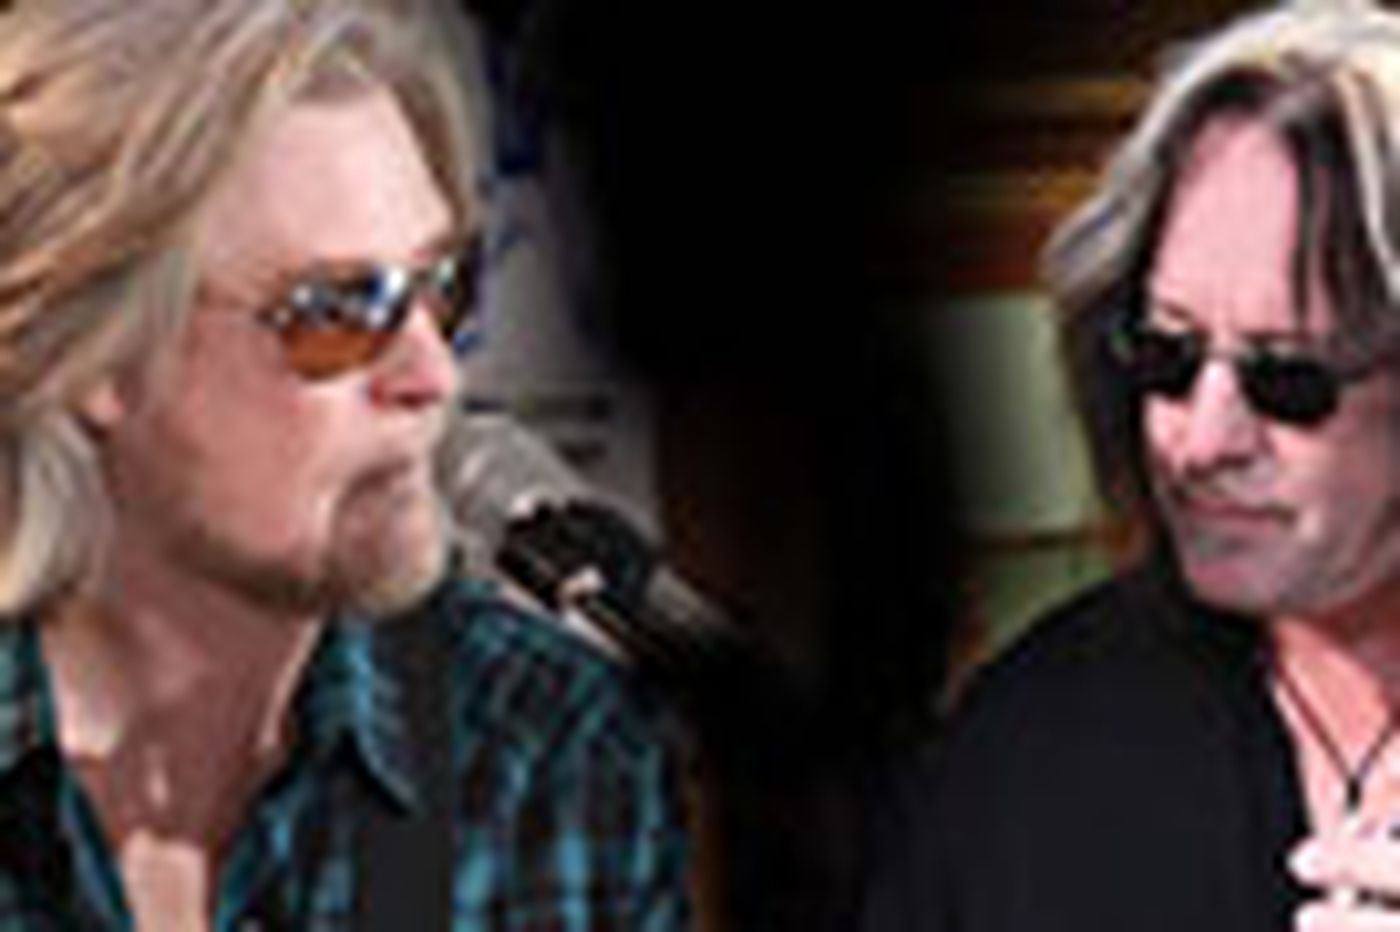 Daryl Hall takes his show from the Internet to the Borgata in Atlantic City with guest Todd Rundgren